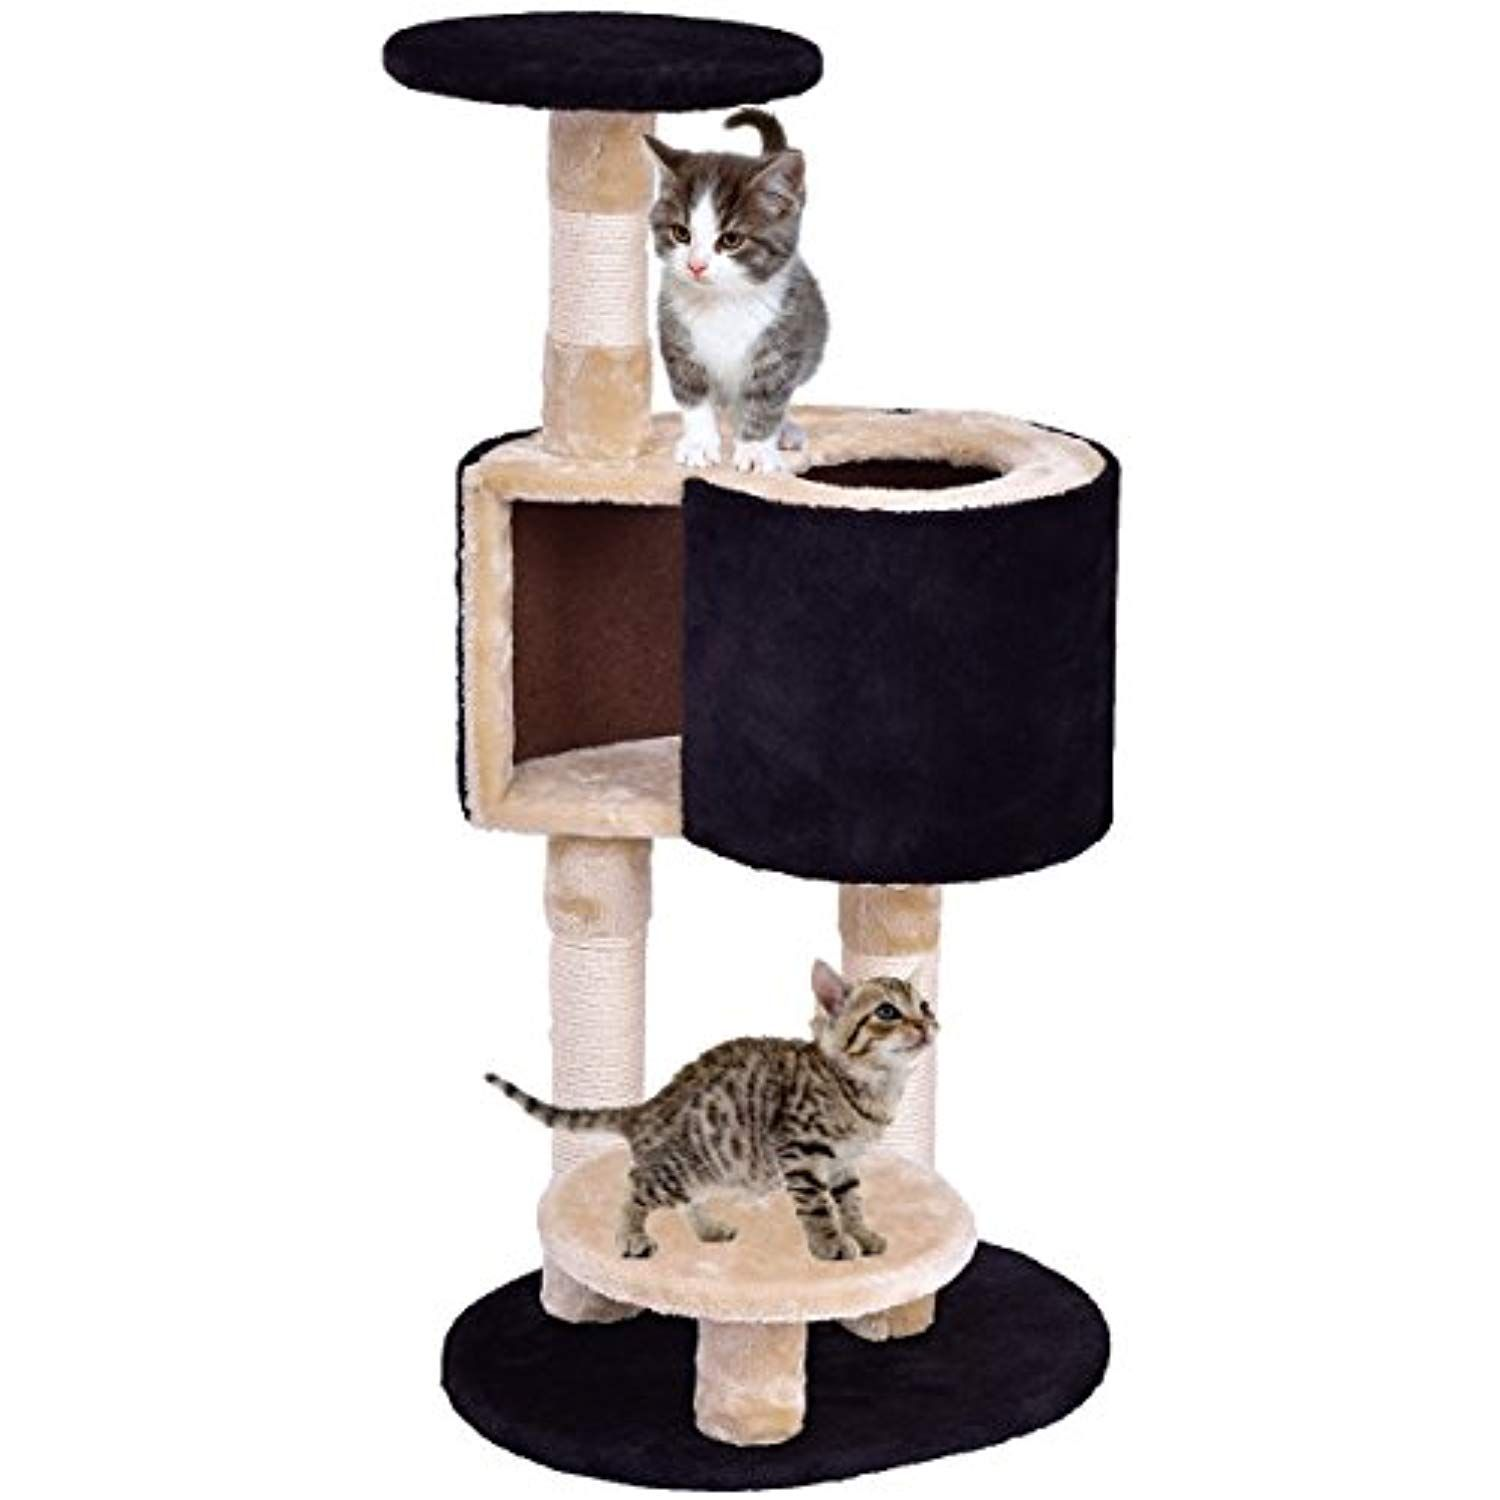 Tangkula Cat Tree Kitten Tower With Scratching Post Kitten Condo Activity Tree You Can Find Out More Details At The Link Kitten Tower Cat Tree Kitten House